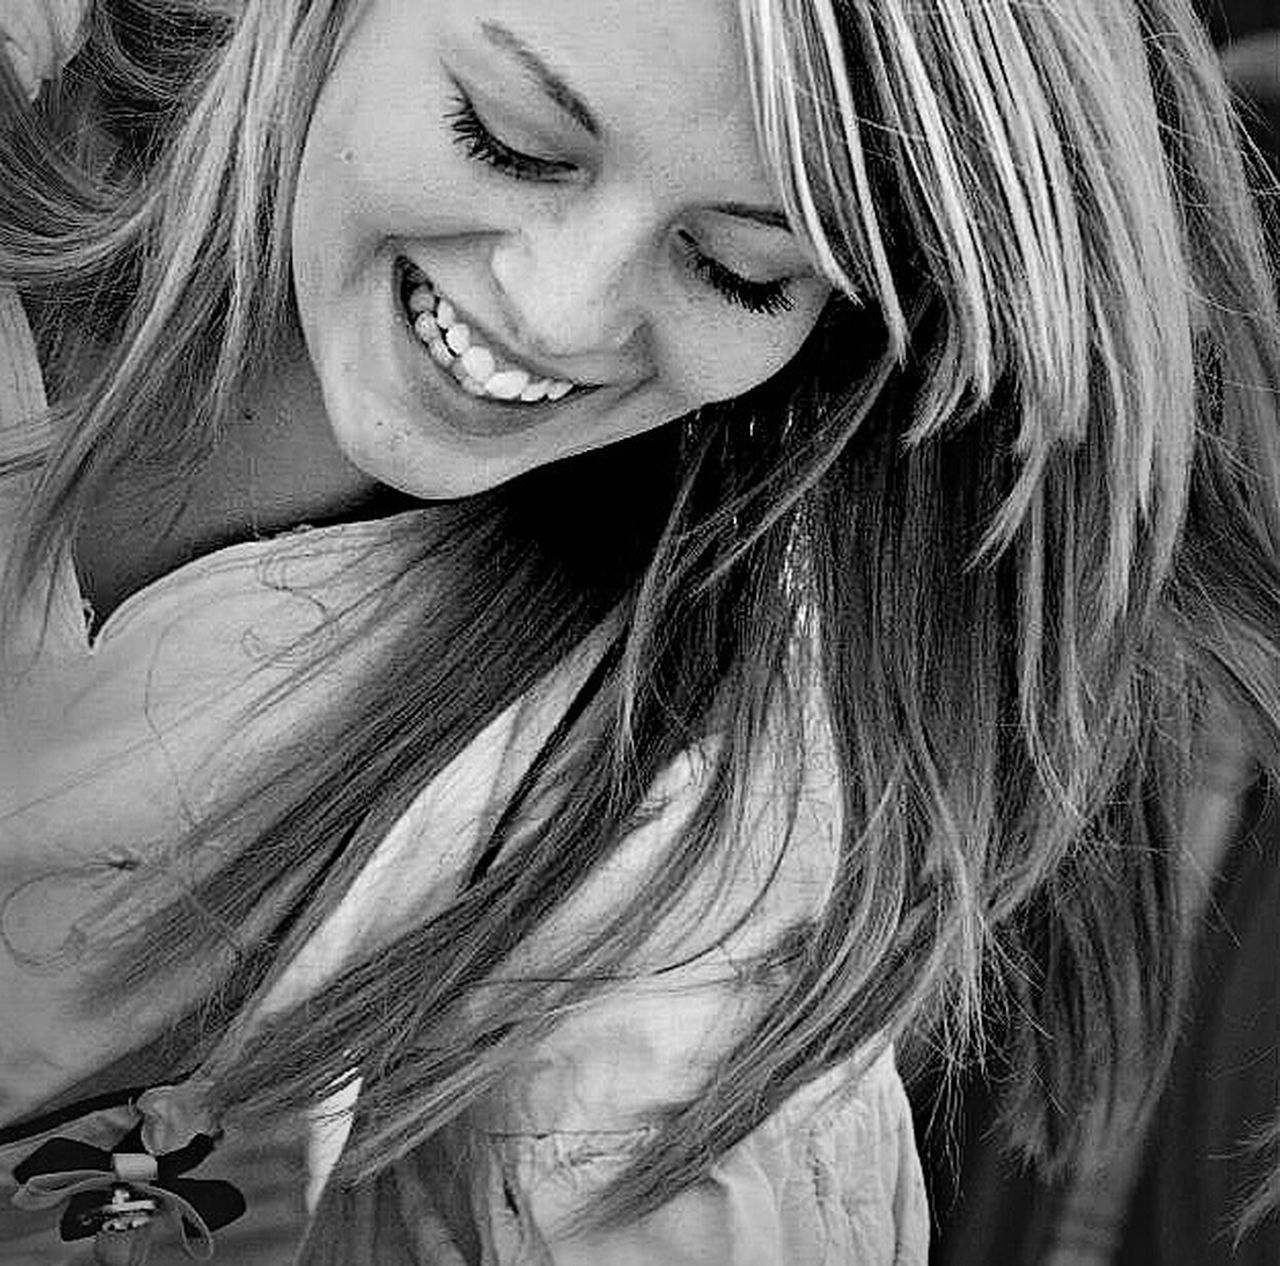 long hair, only women, one person, one woman only, smiling, headshot, adults only, close-up, portrait, blond hair, beautiful woman, adult, beauty, human body part, women, happiness, looking at camera, human face, people, day, real people, one young woman only, young women, young adult, outdoors